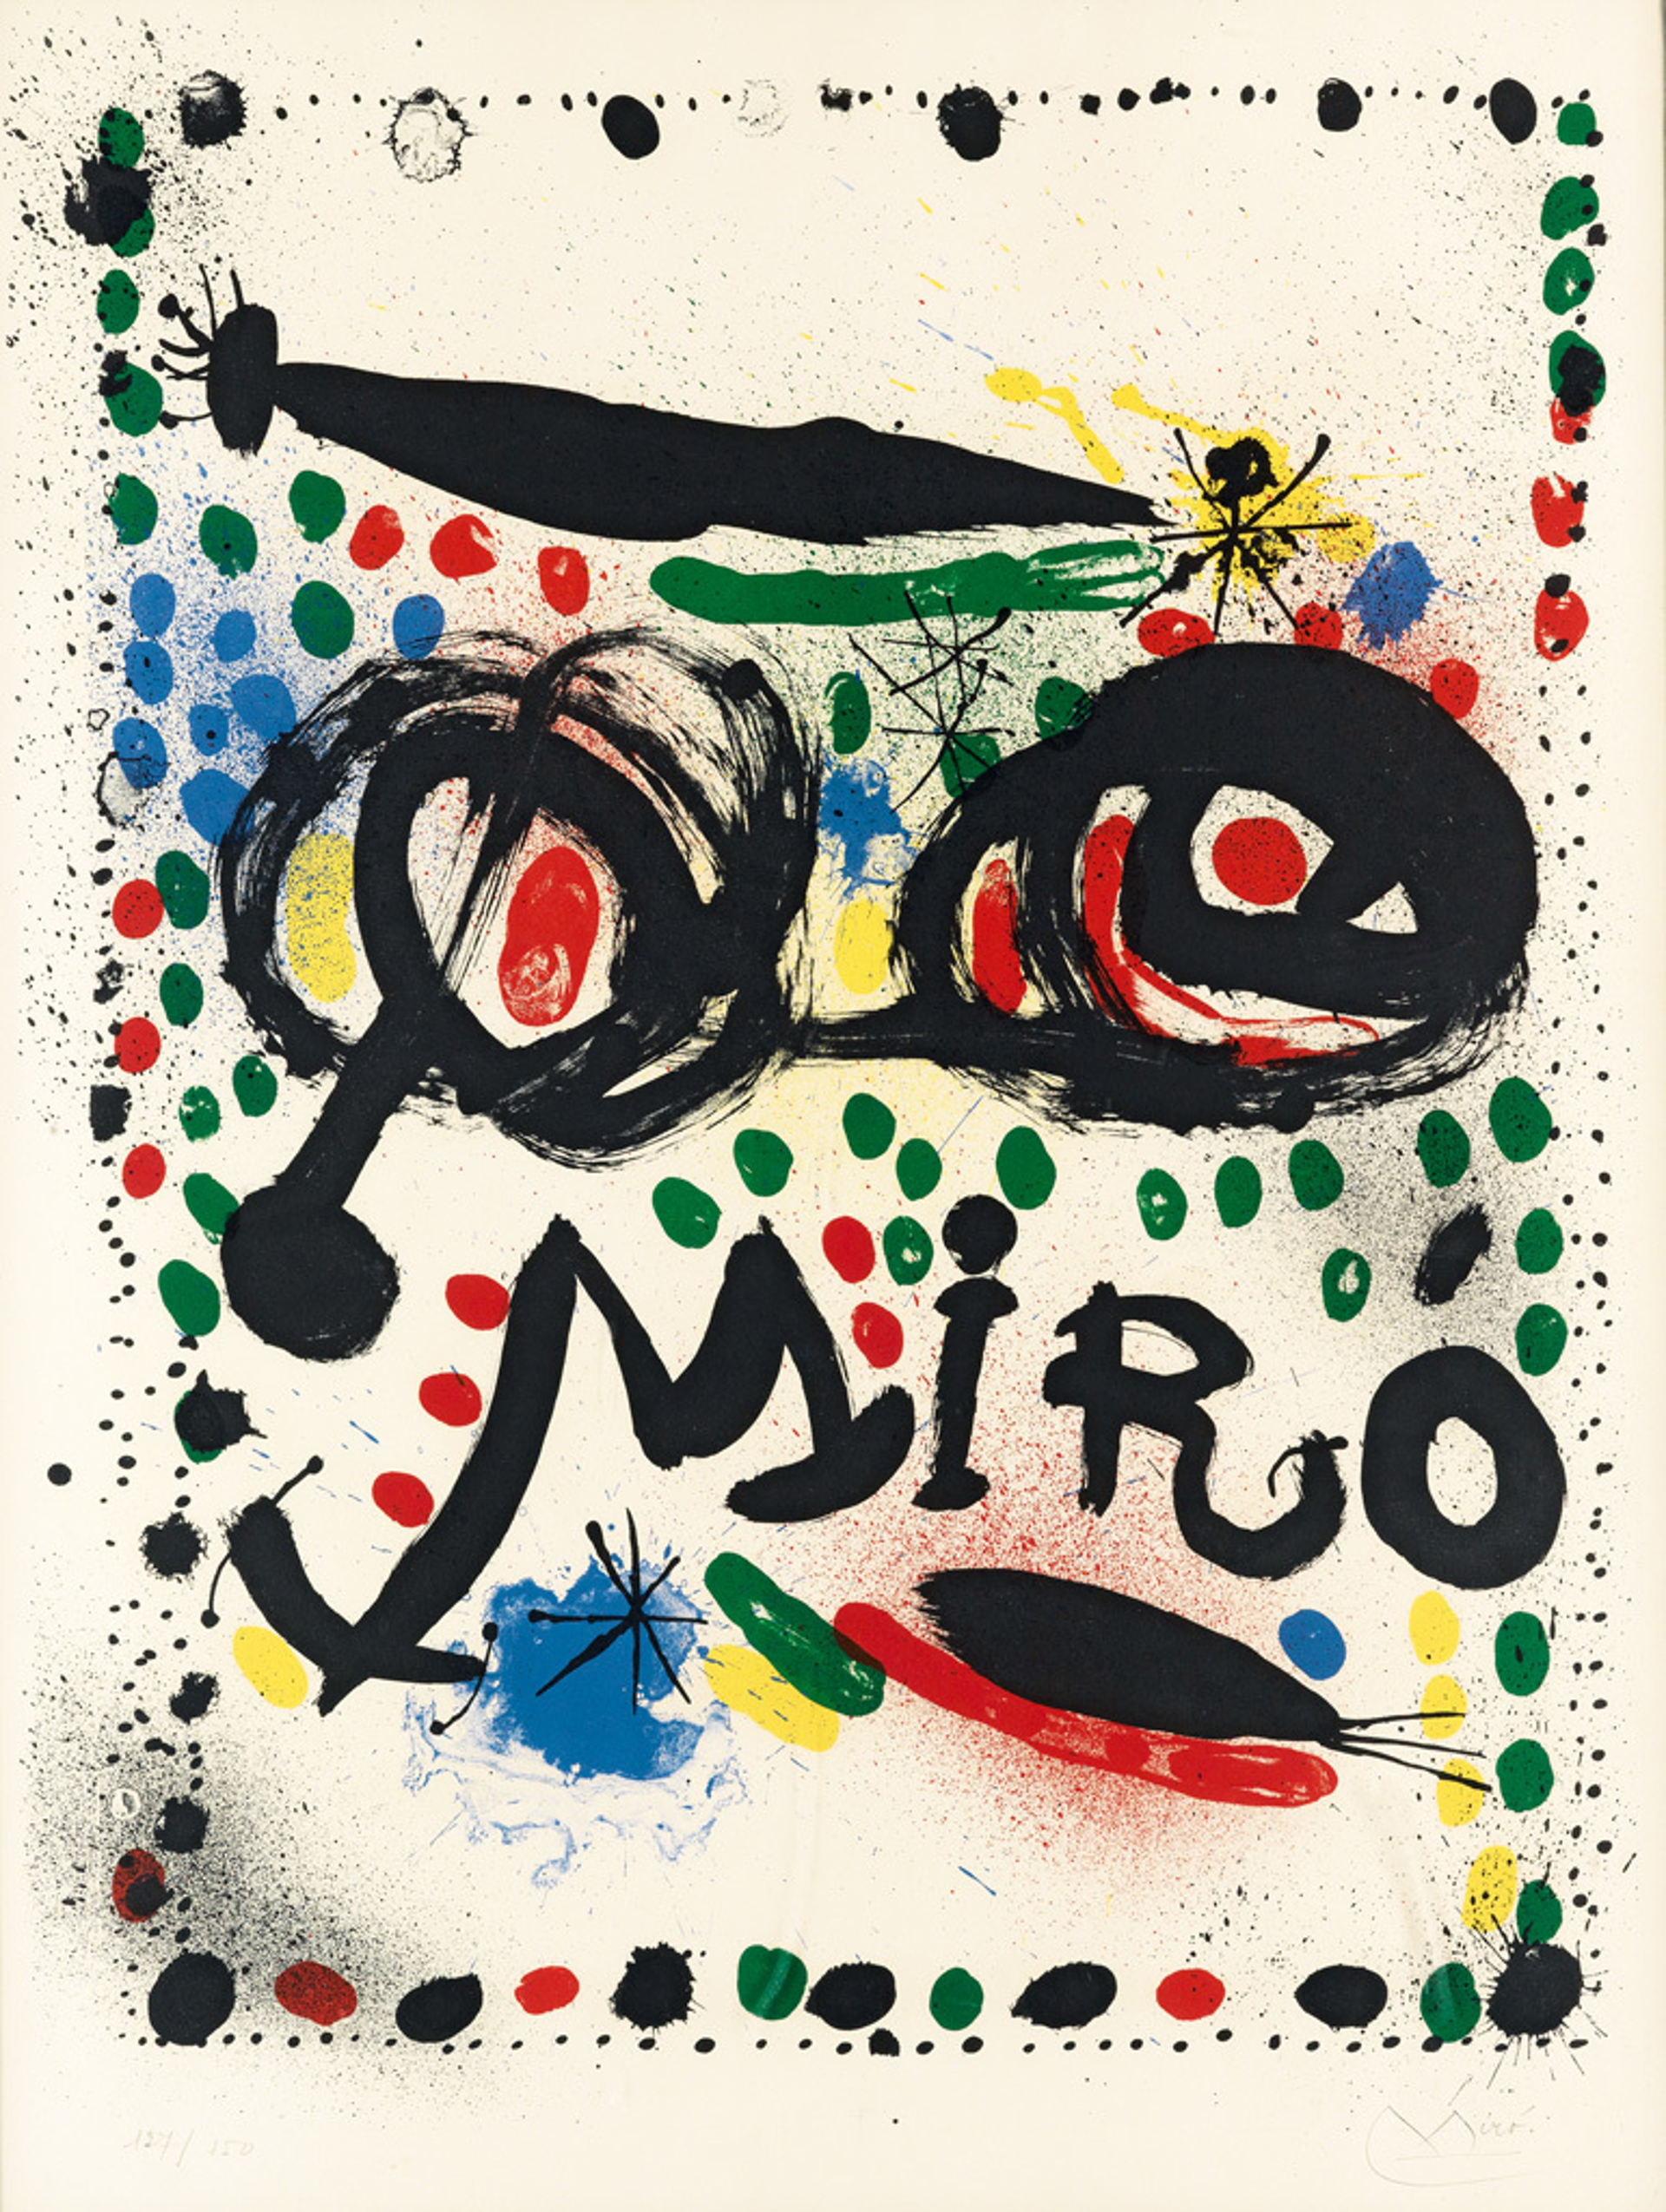 """Poster for the Exhibition """"Joan Miro Graphics"""" Philadelphia Museum of Art by Joan Miro (1893 - 1983)"""